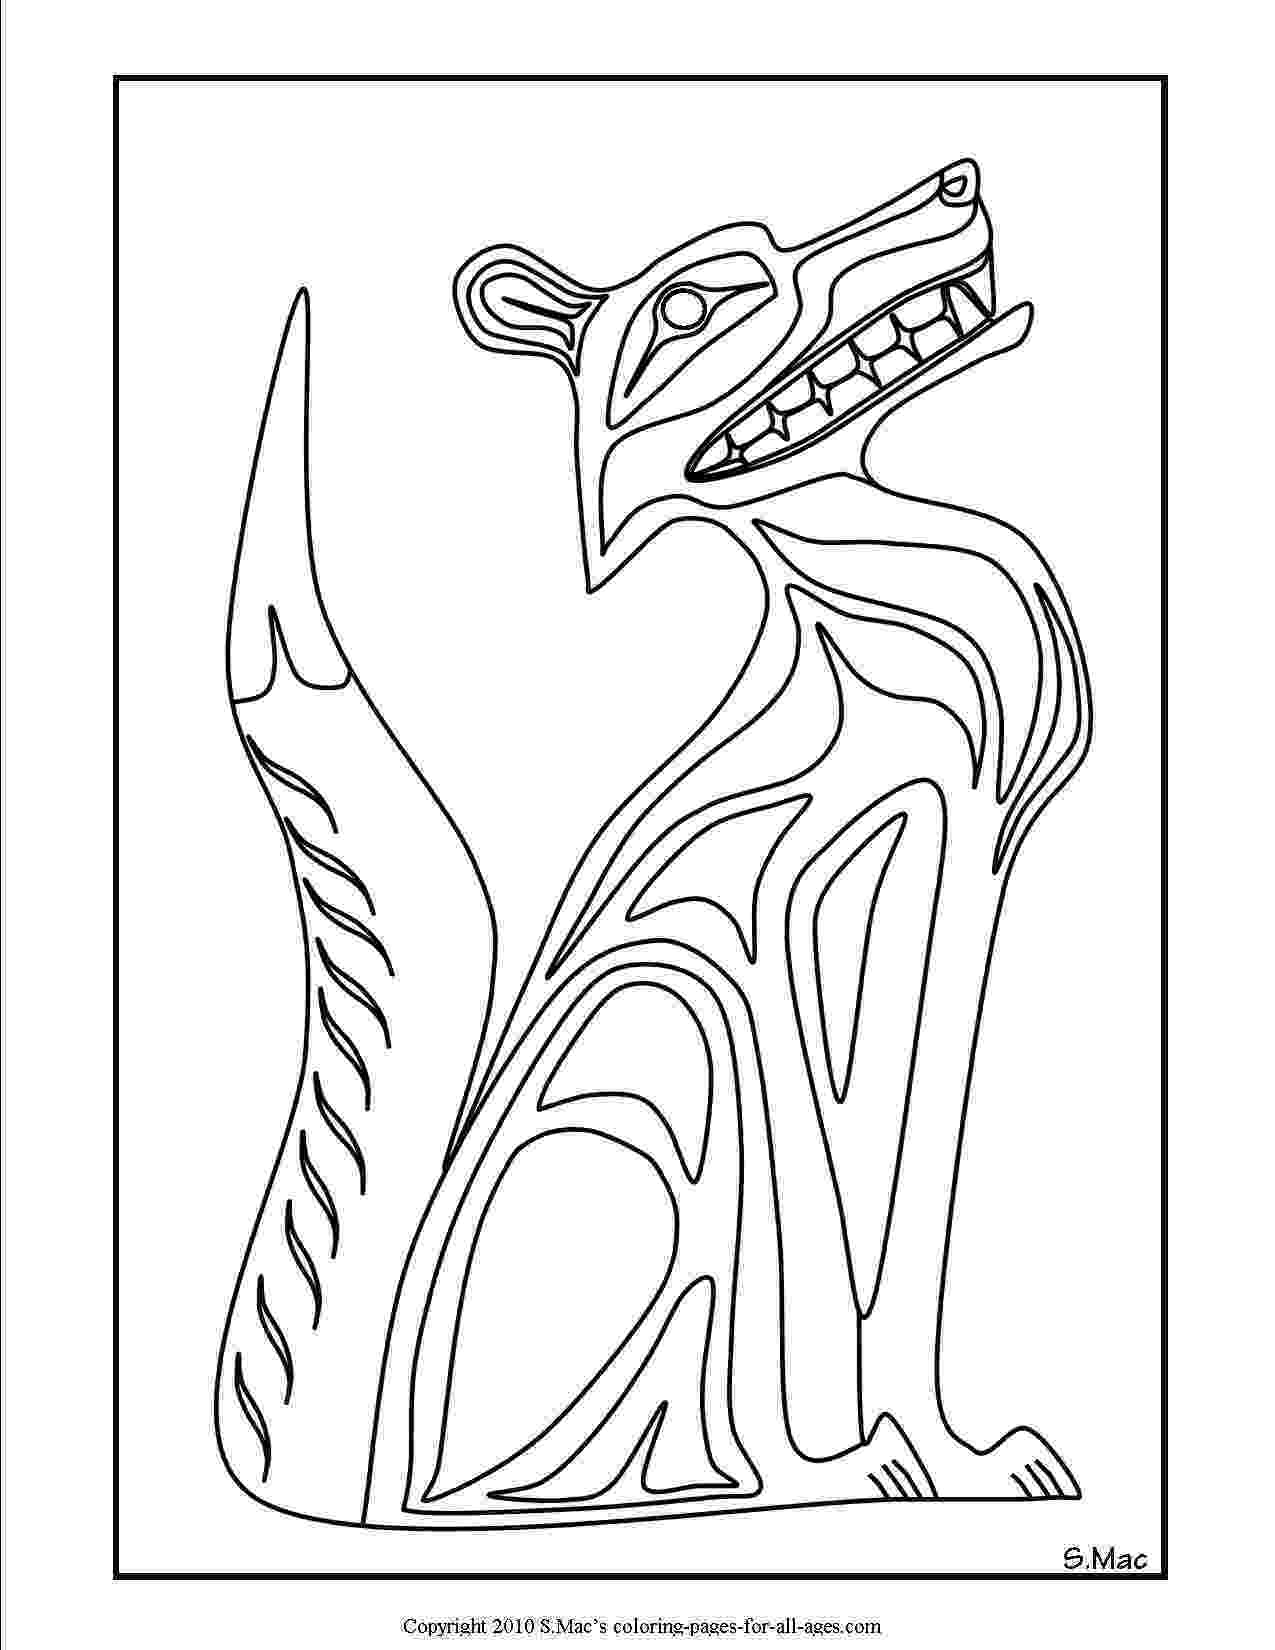 free printable native american coloring pages native american coloring pages to download and print for free printable coloring native pages free american